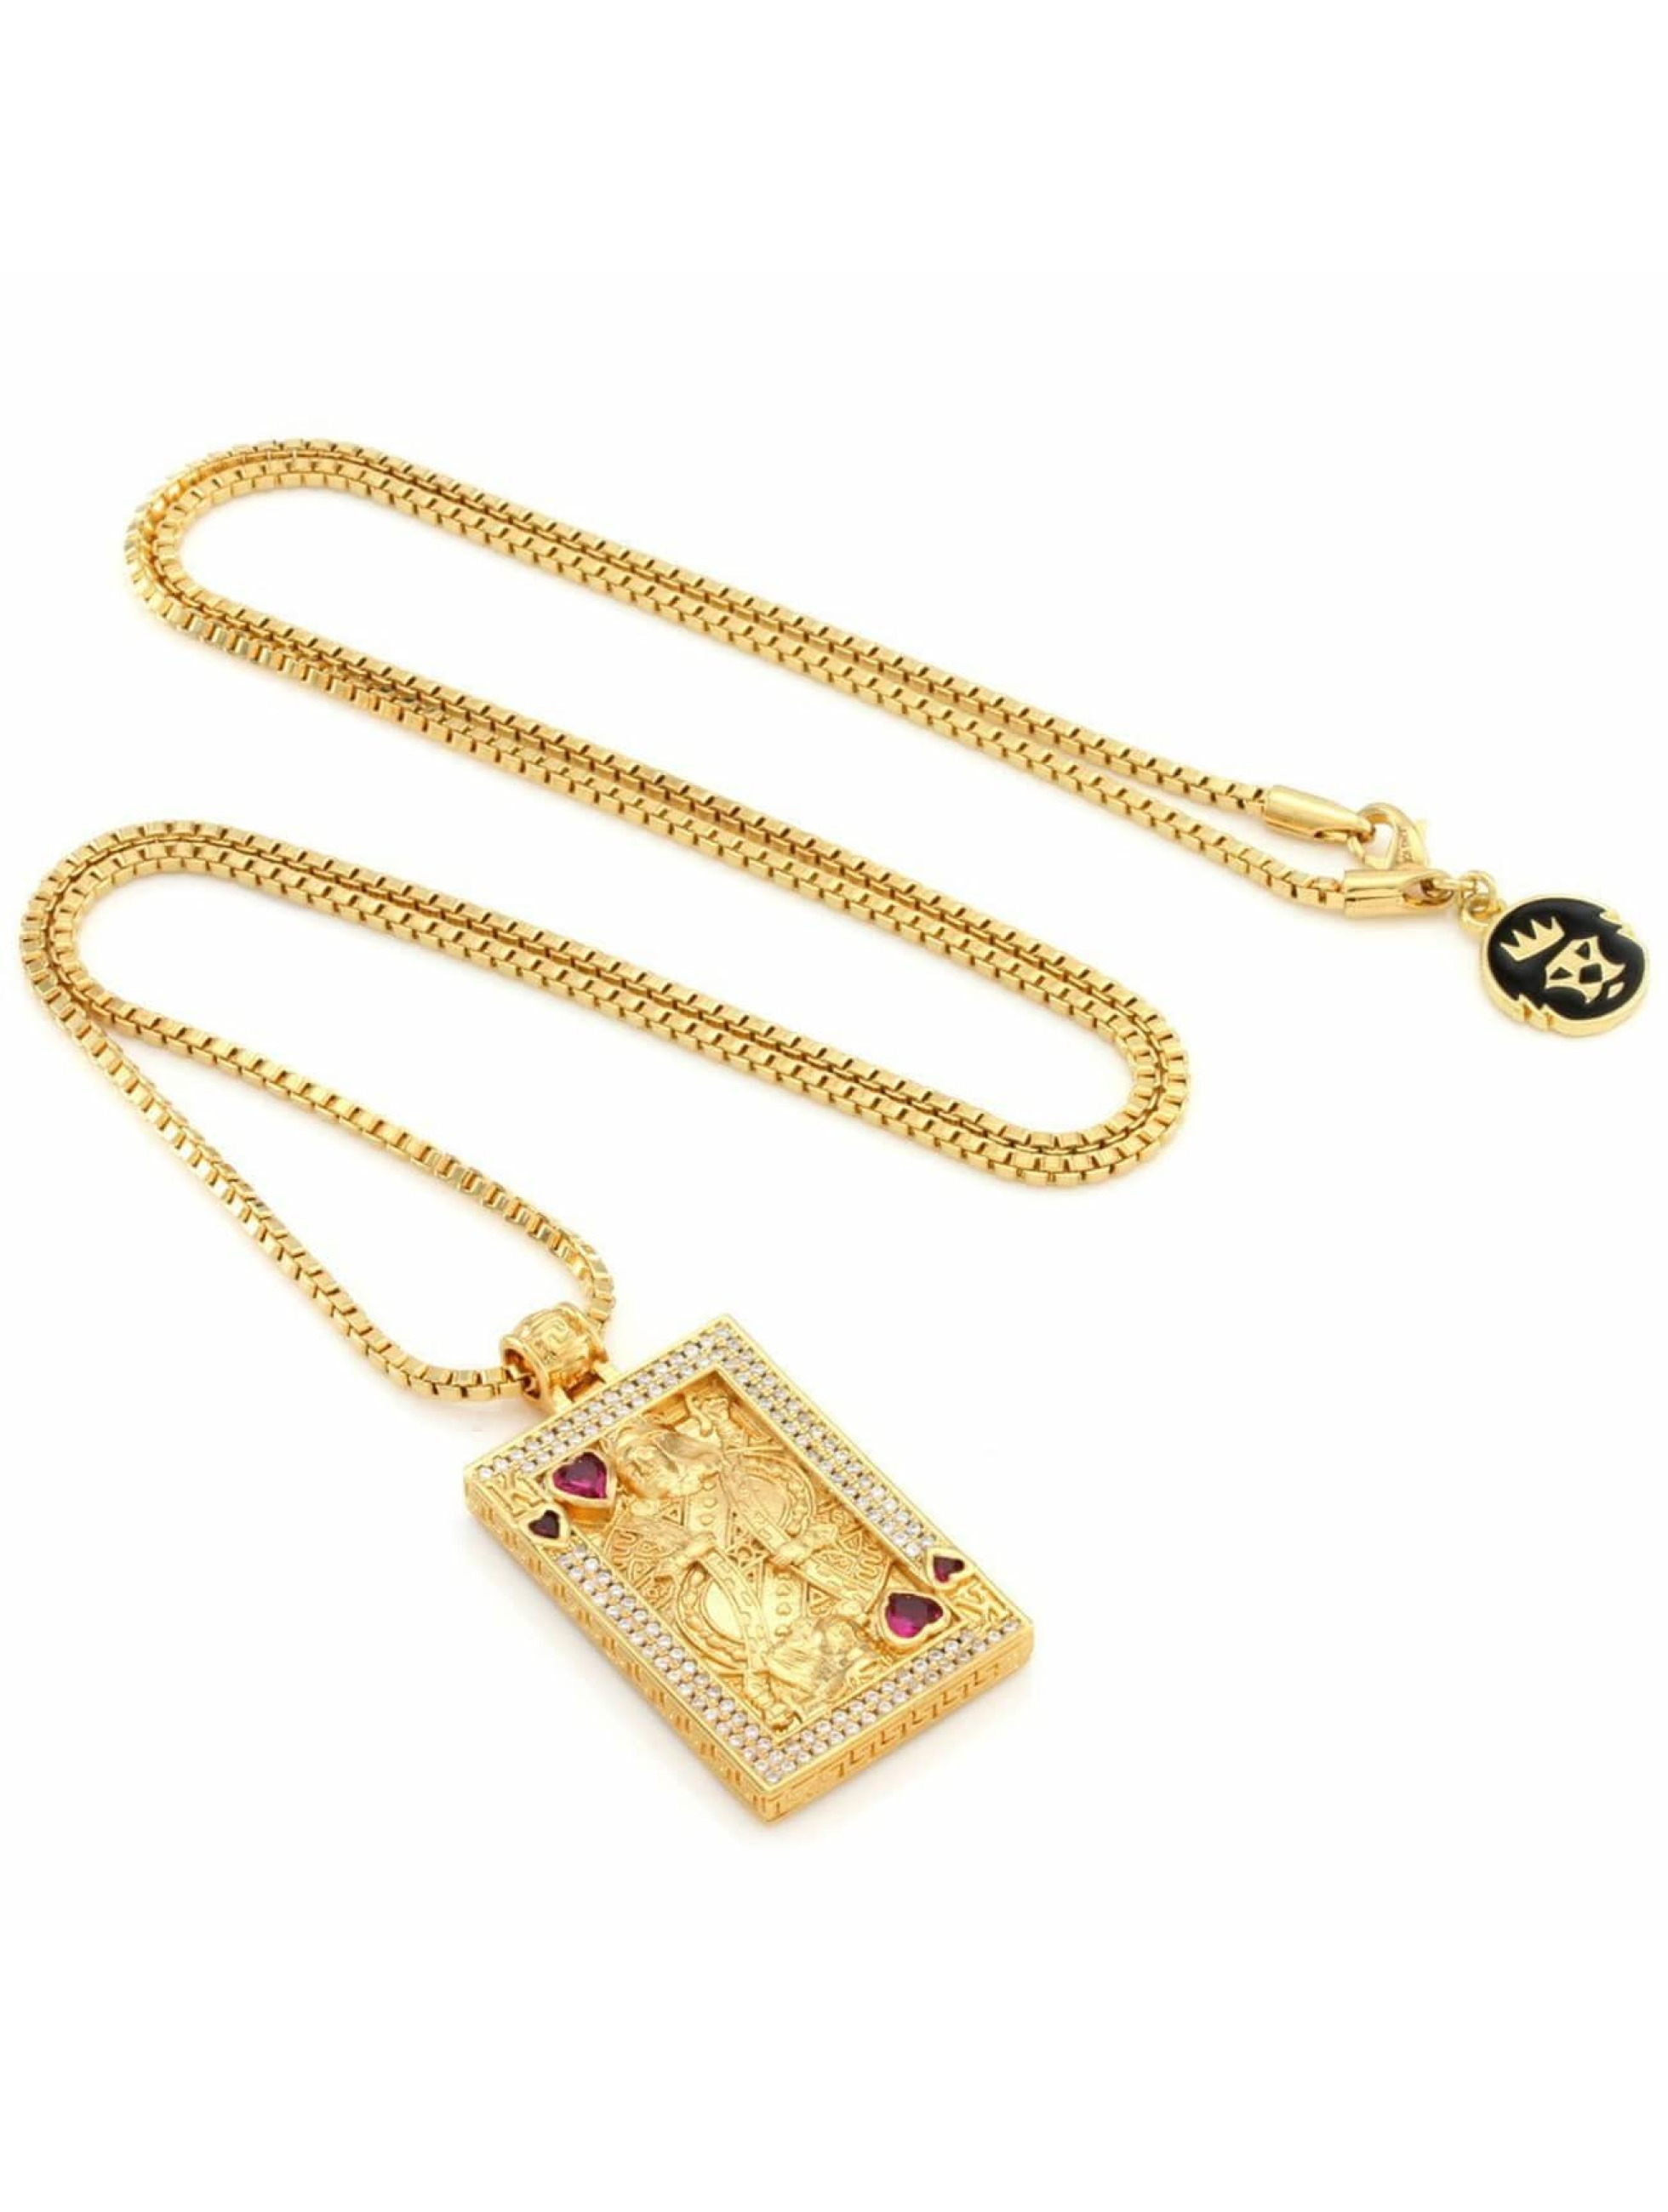 KING ICE Łańcuchy Gold_Plated CZ Suicide King zloty